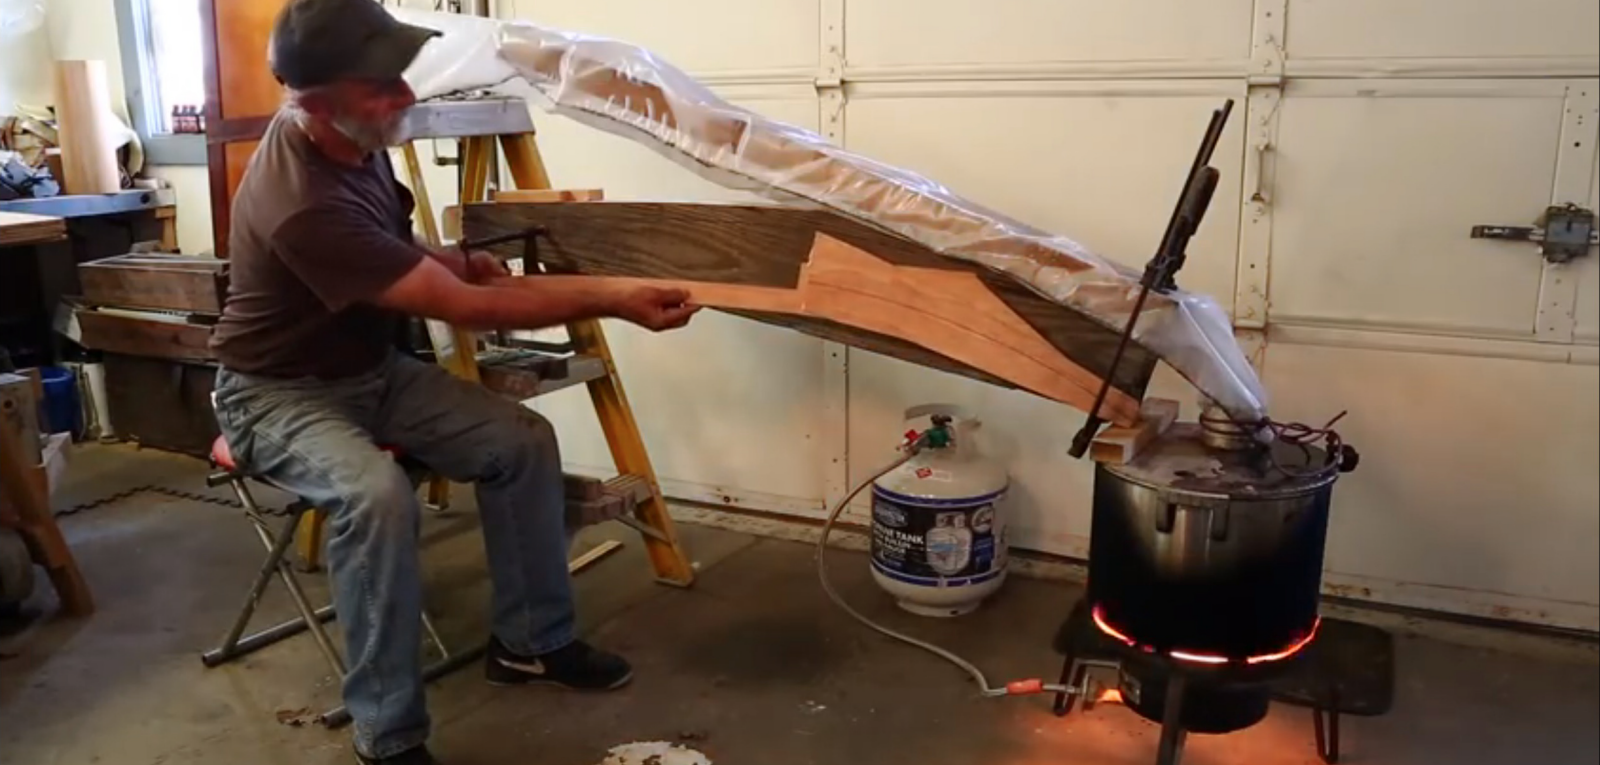 A Better Way to Steam Wood for Bending: Use a Plastic Bag! - Core77